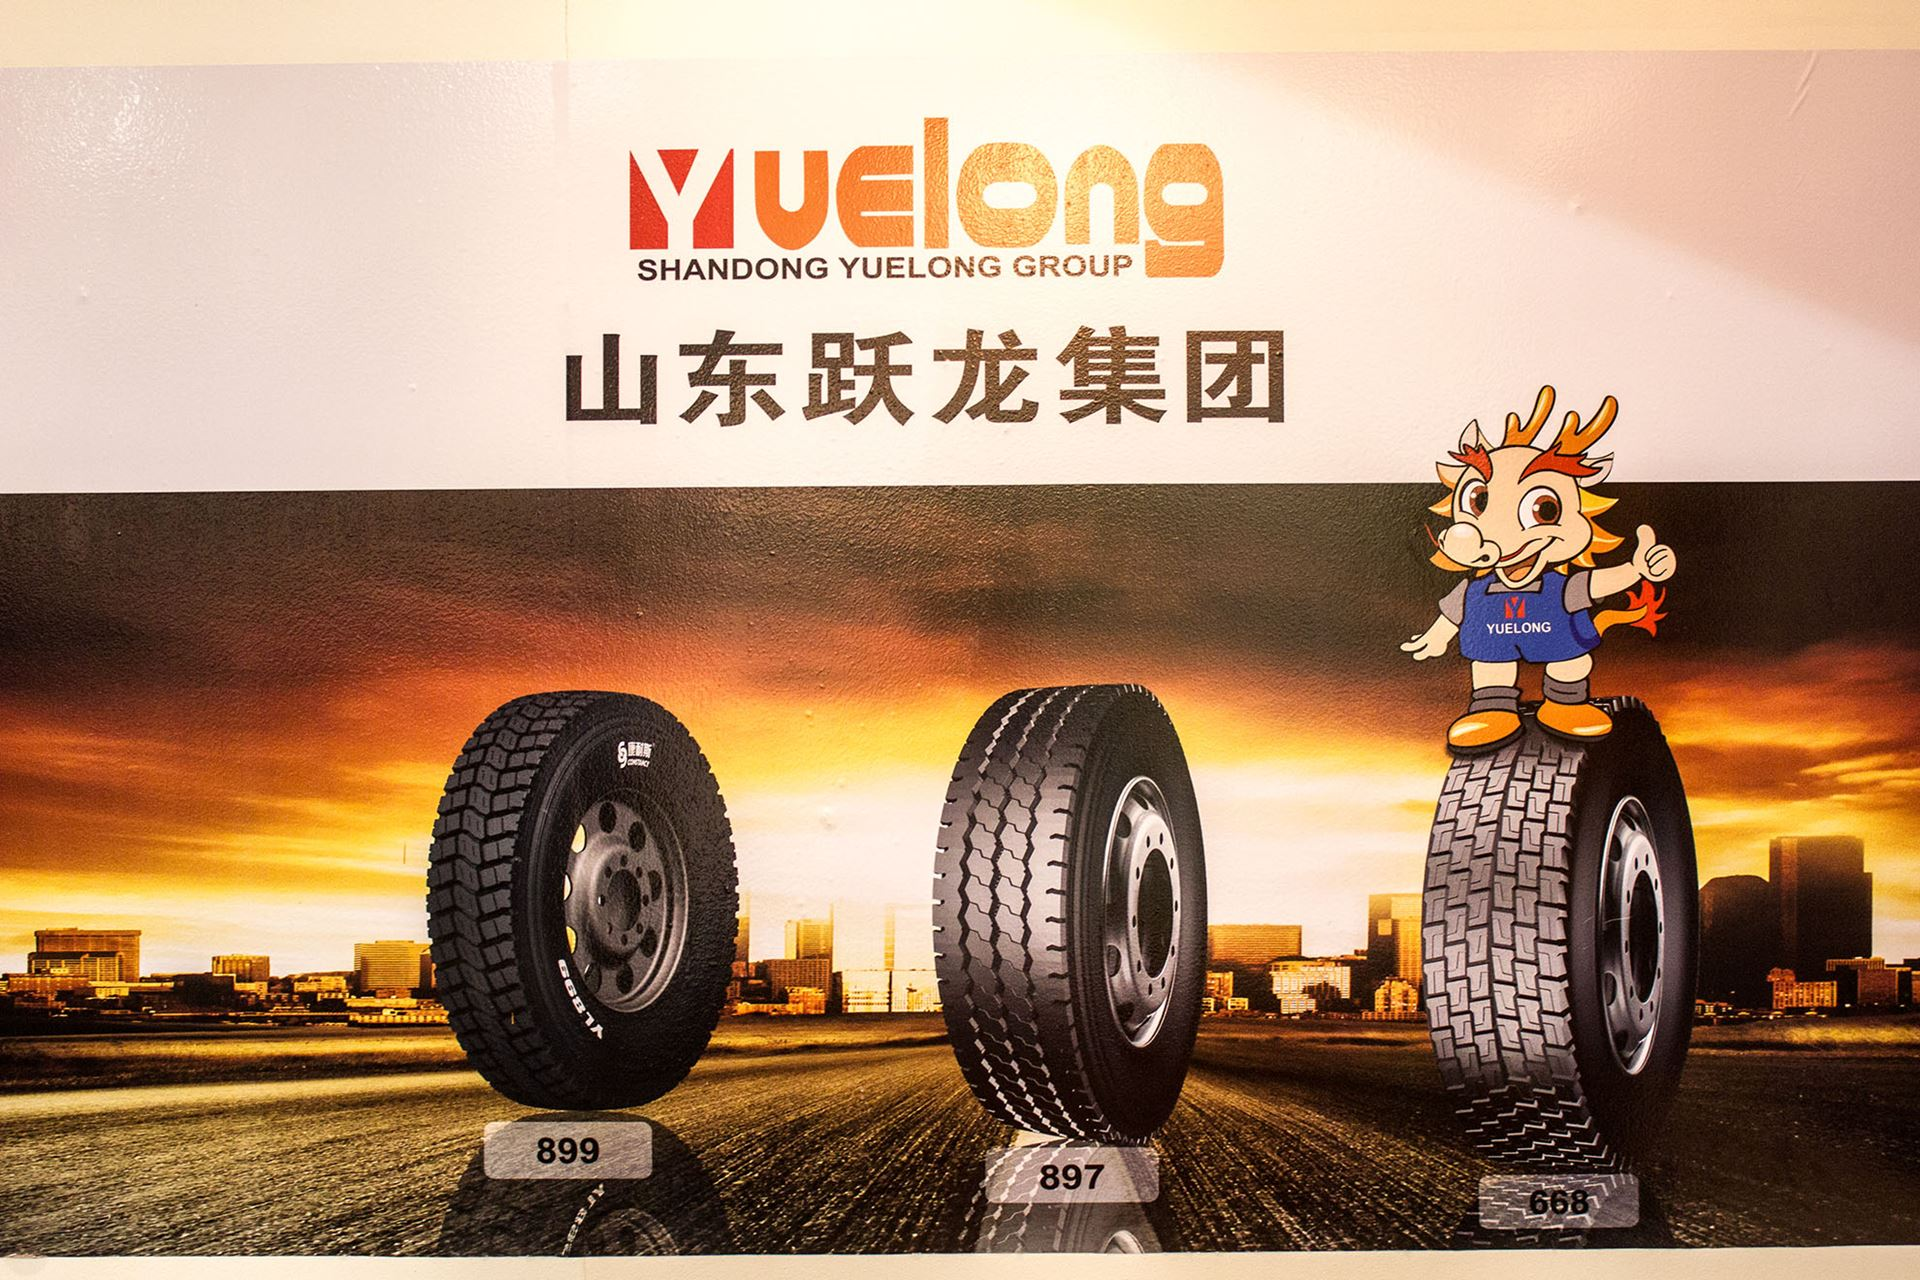 Tyre-Expo-South-Africa-2014-yuelong-shadong-tyres-02